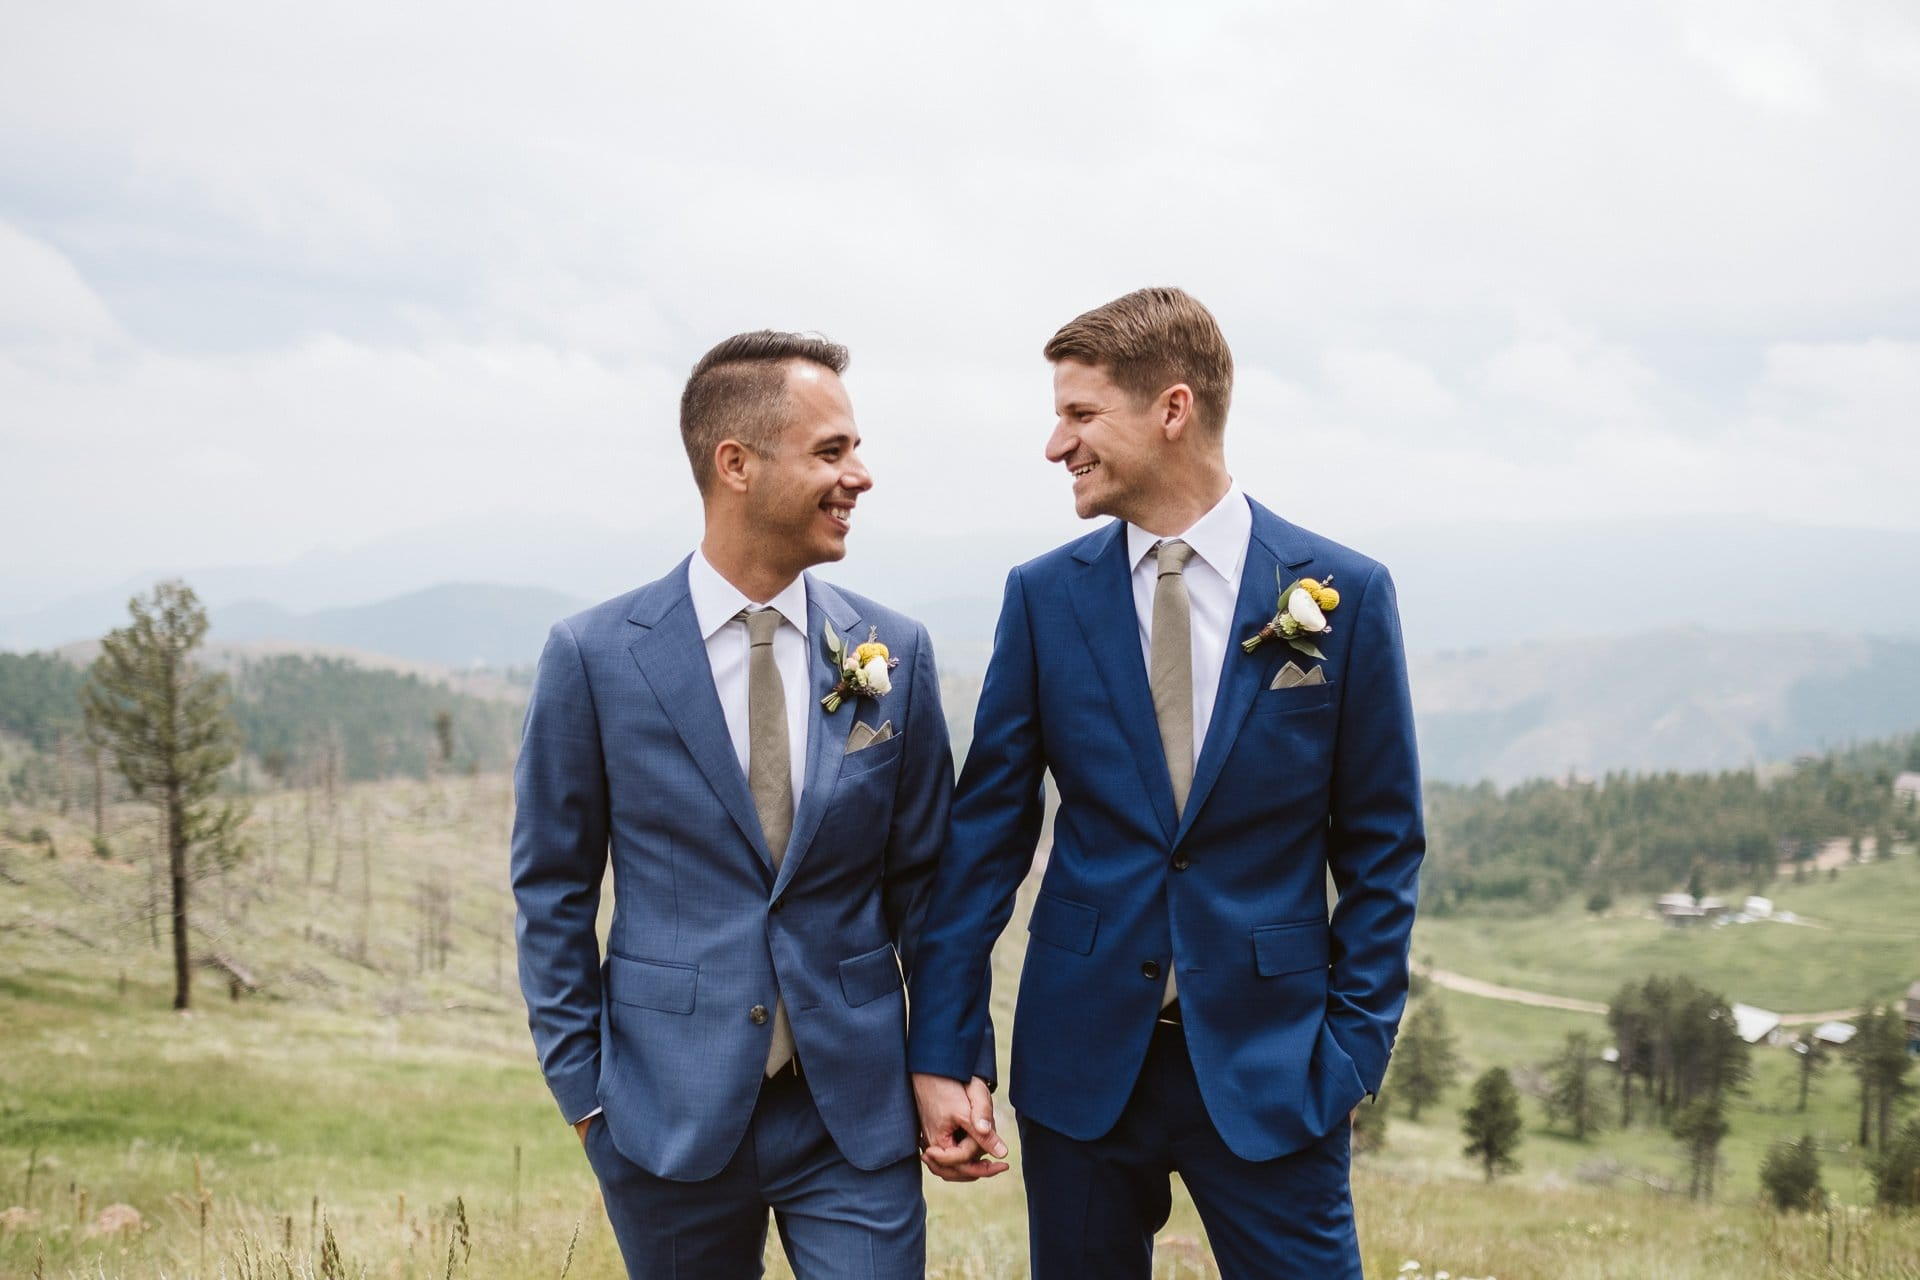 Chris + Erik's Colorado Mountain Ranch Wedding